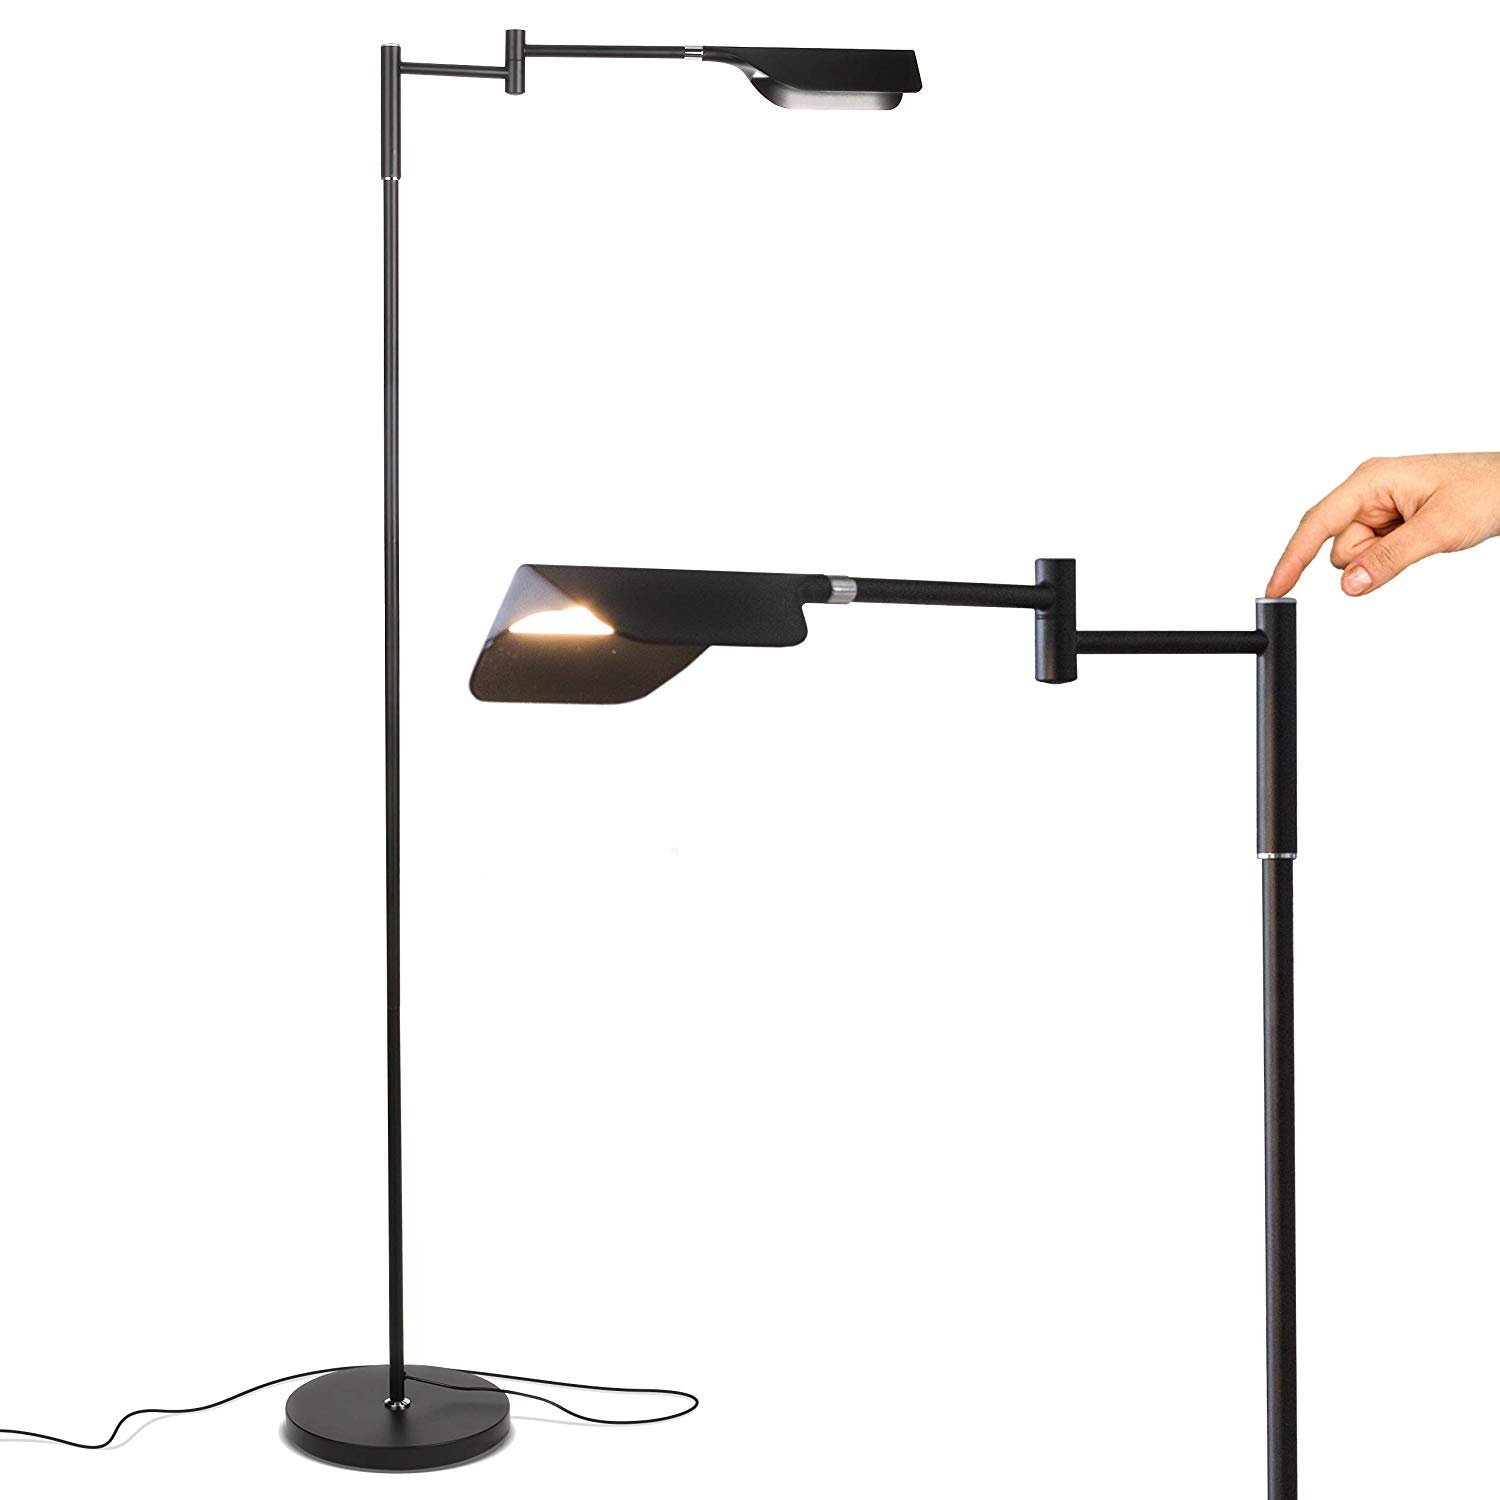 Floor lamp by Brightech